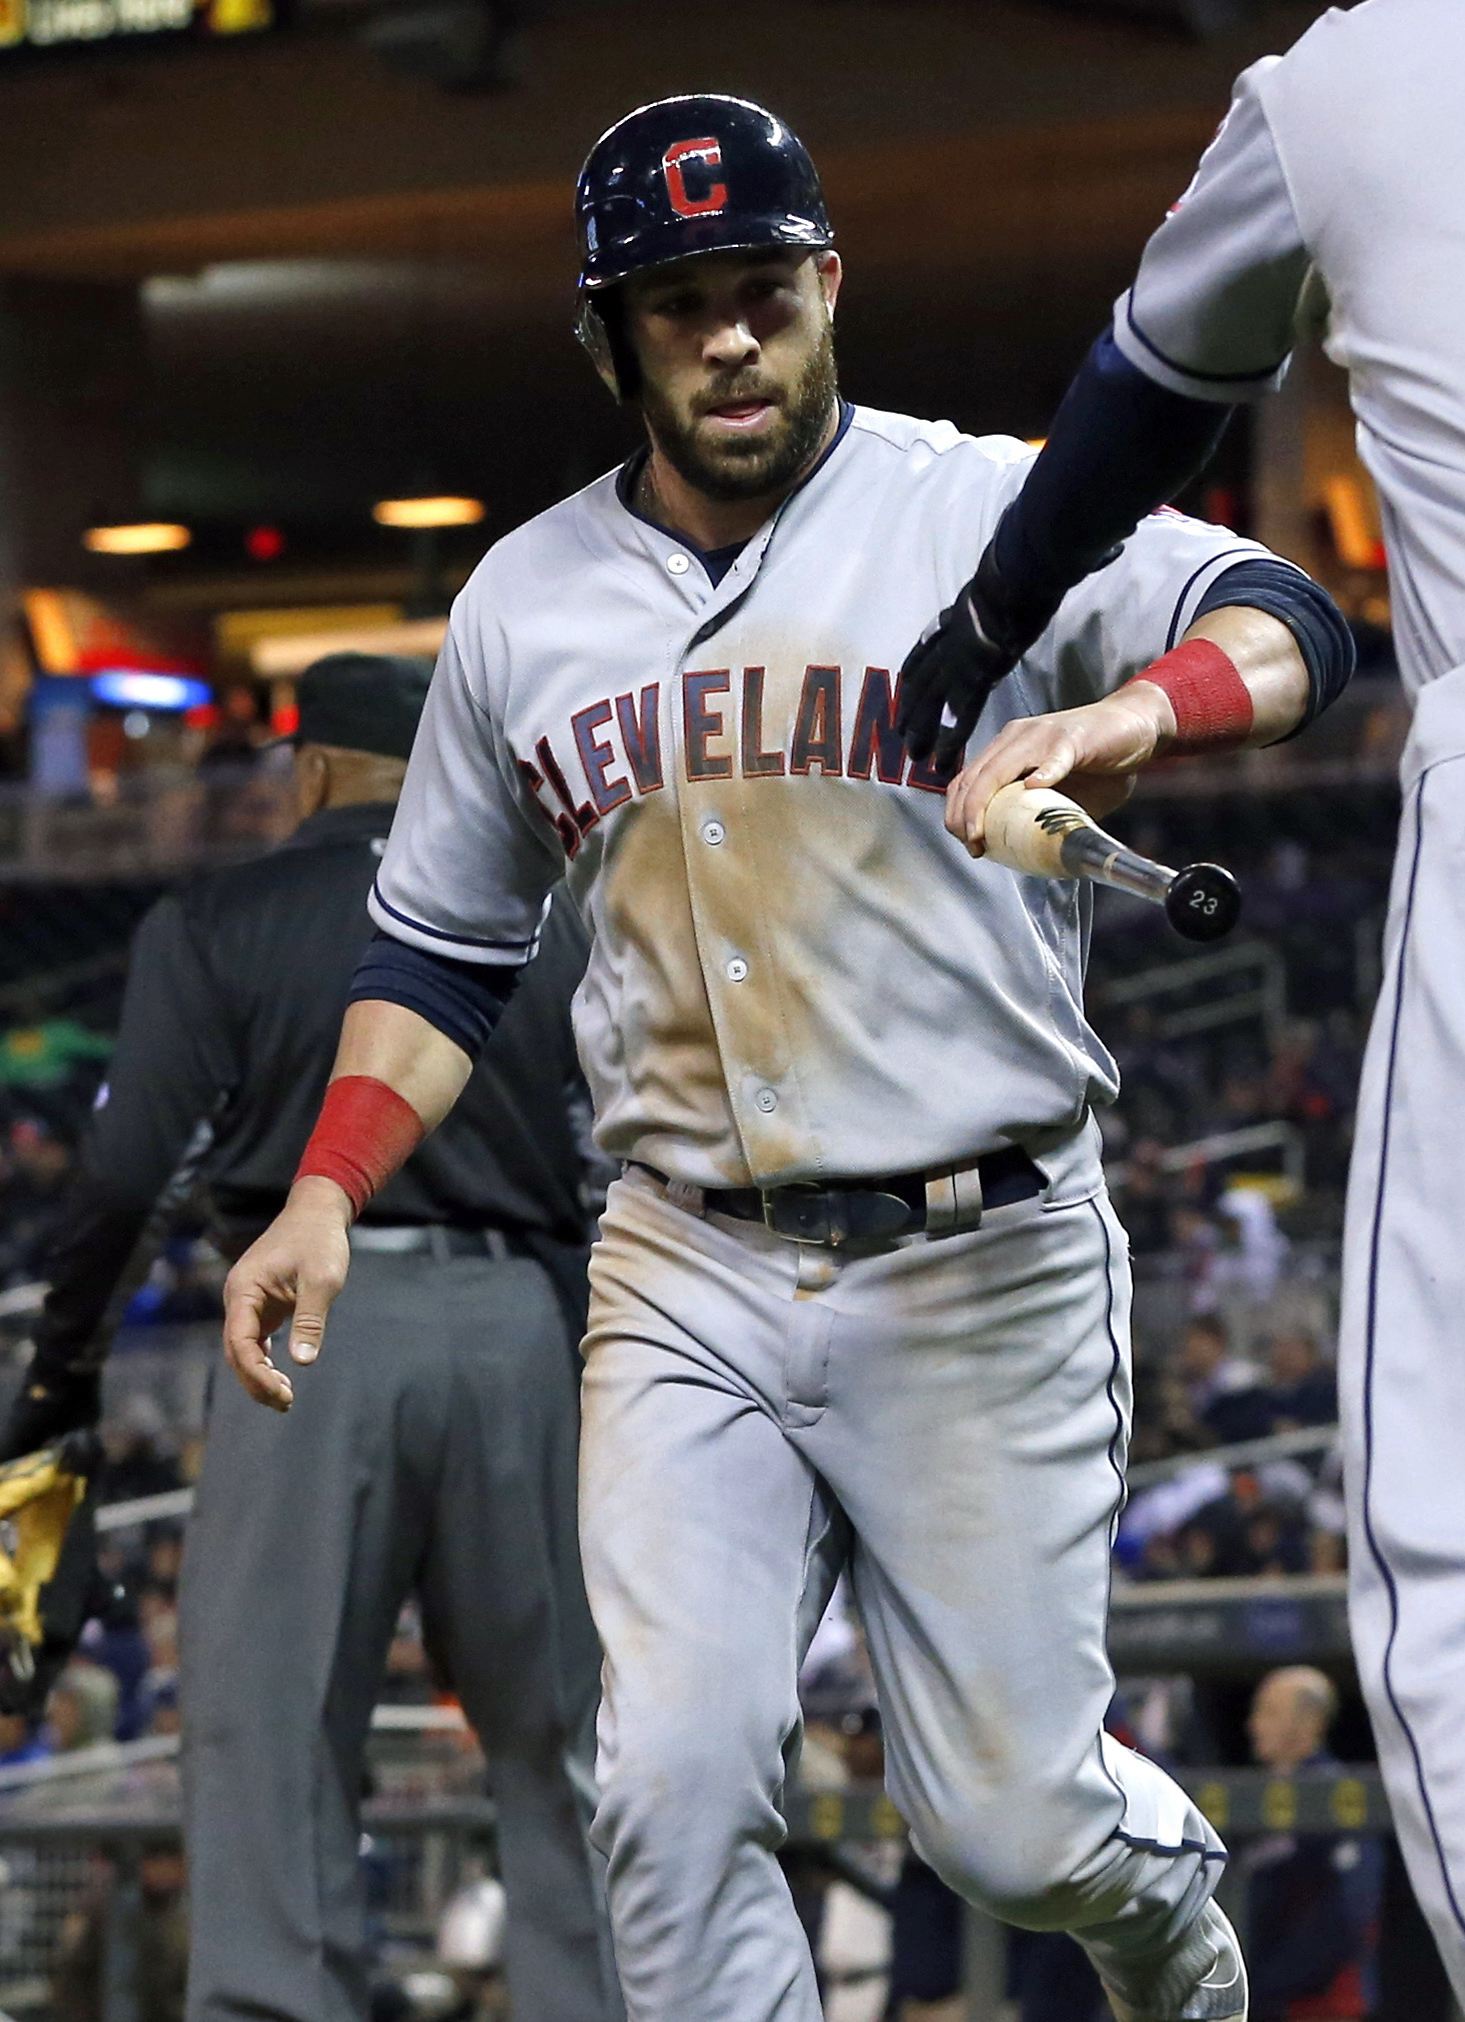 Cleveland Indians' Jason Kipnis hands a bat to a bat boy after he scored on a single by Michael Brantley in the fifth inning of a baseball game Wednesday, April 27, 2016, in Minneapolis. (AP Photo/Jim Mone)